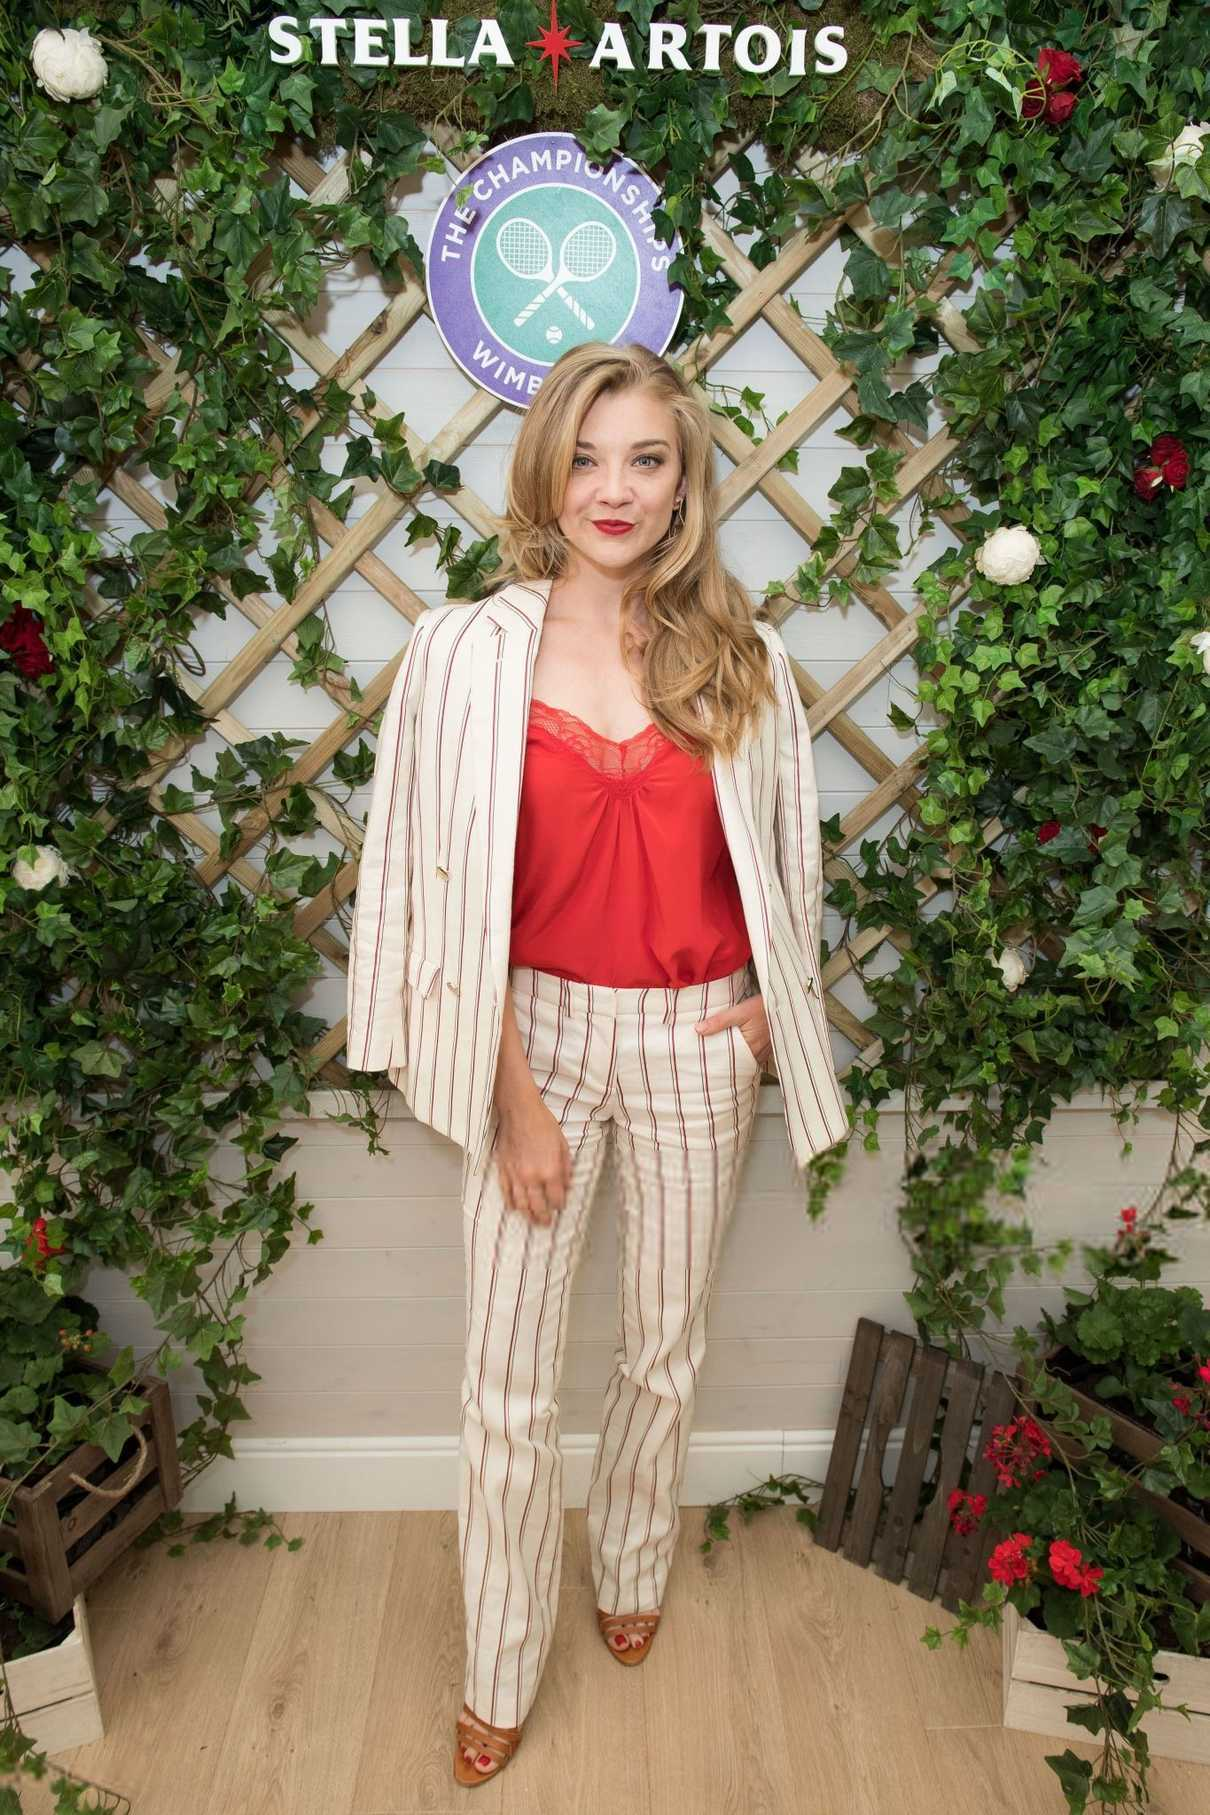 Natalie Dormer at the Championship Wimbledon Hosted by Stella Artois in London 07/02/2018-1